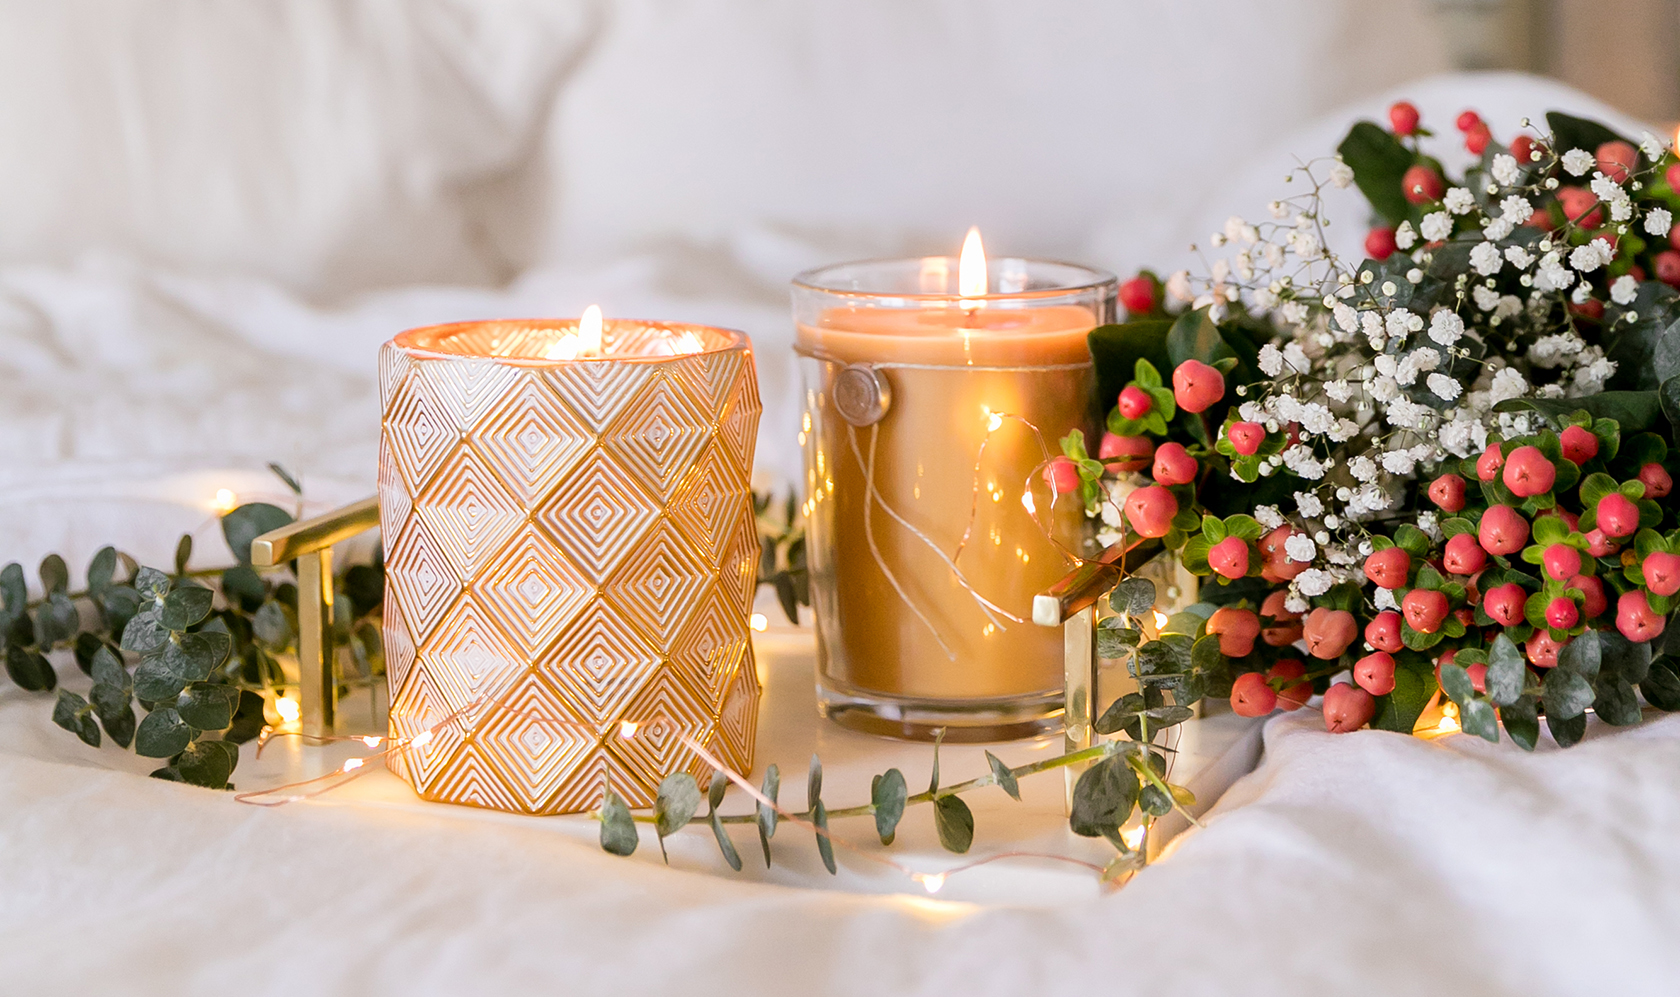 Sydne Style reviews votivo red currant candles for best holiday candles to buy as presents